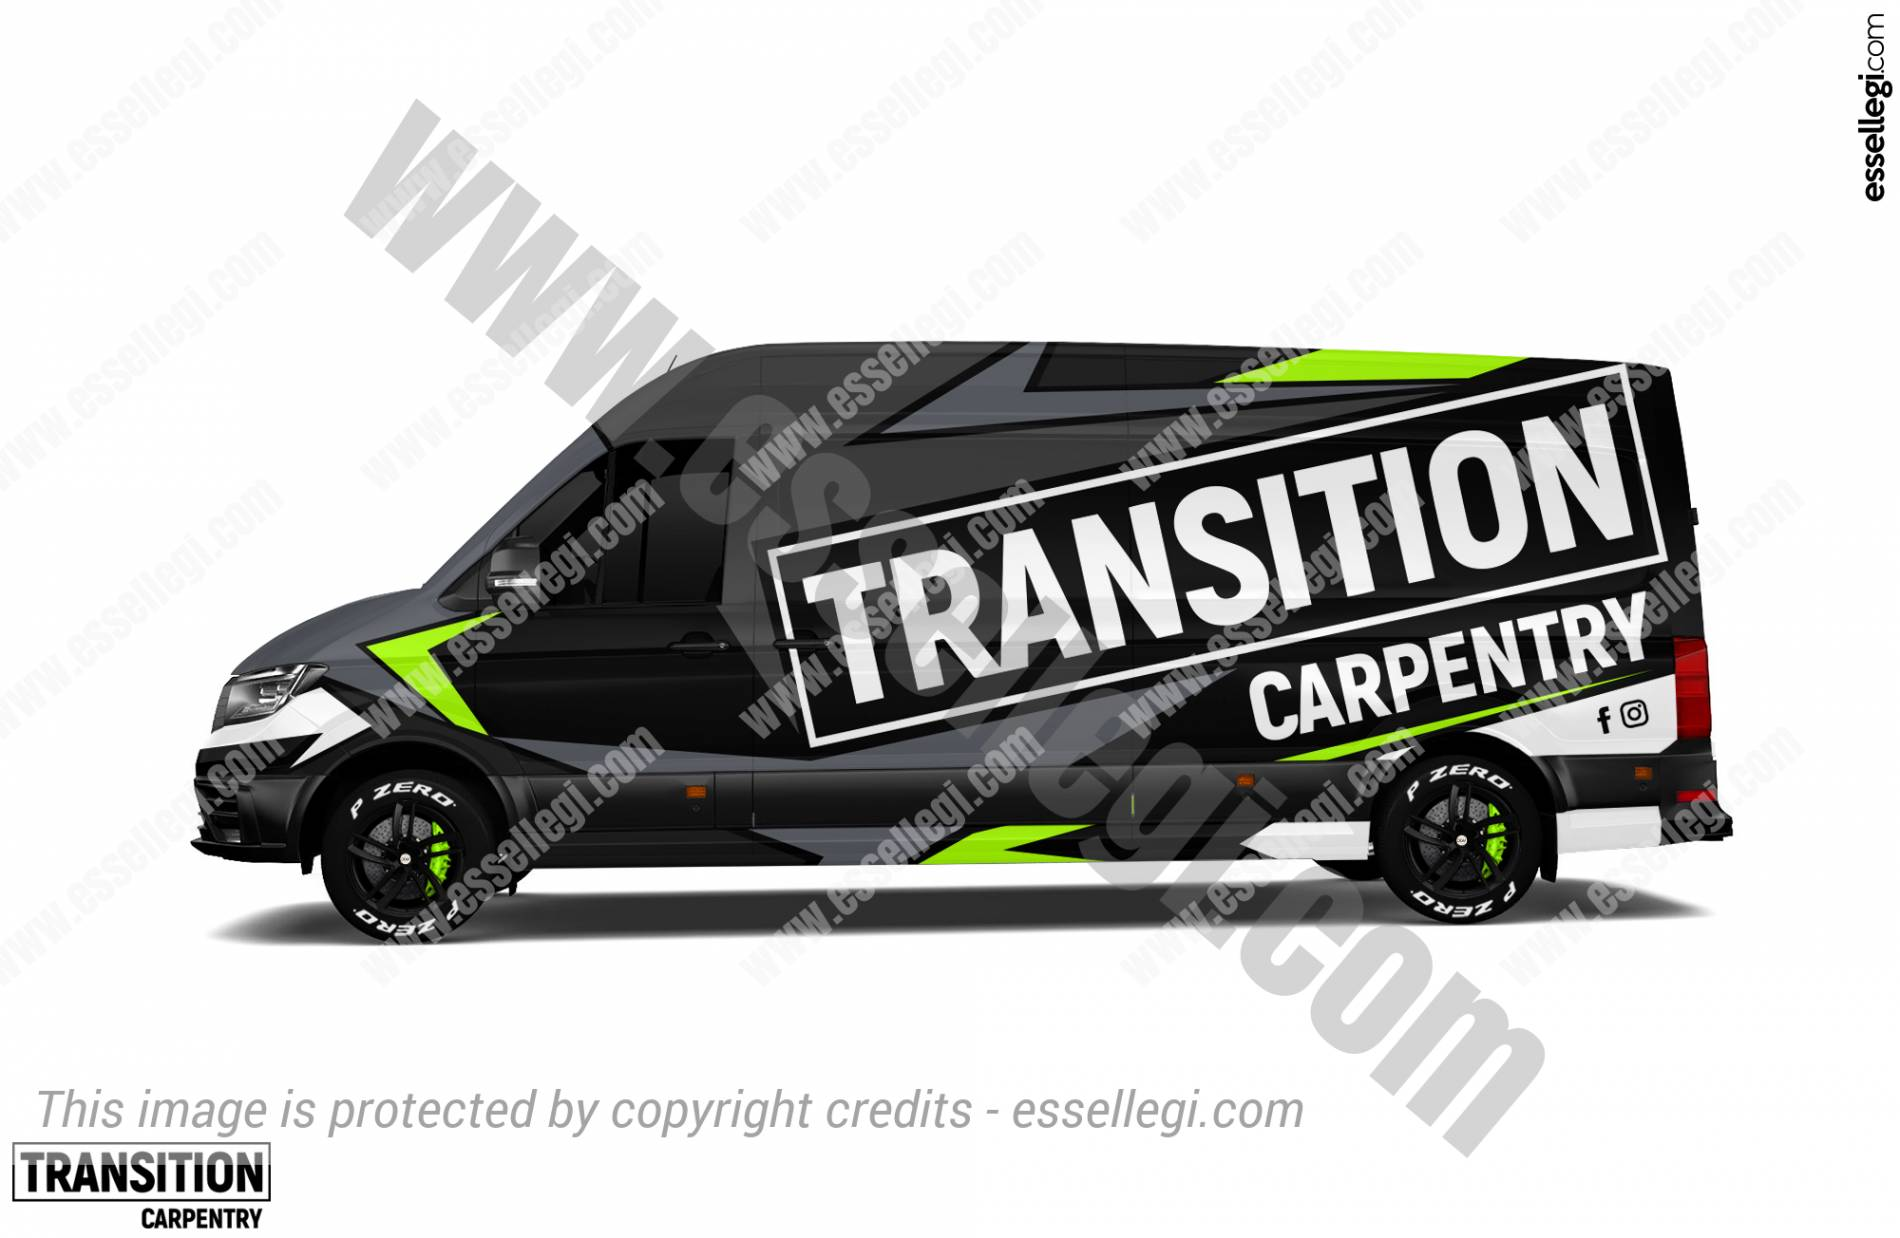 TRANSITION CARPENTRY | VAN WRAP DESIGN 🇦🇺